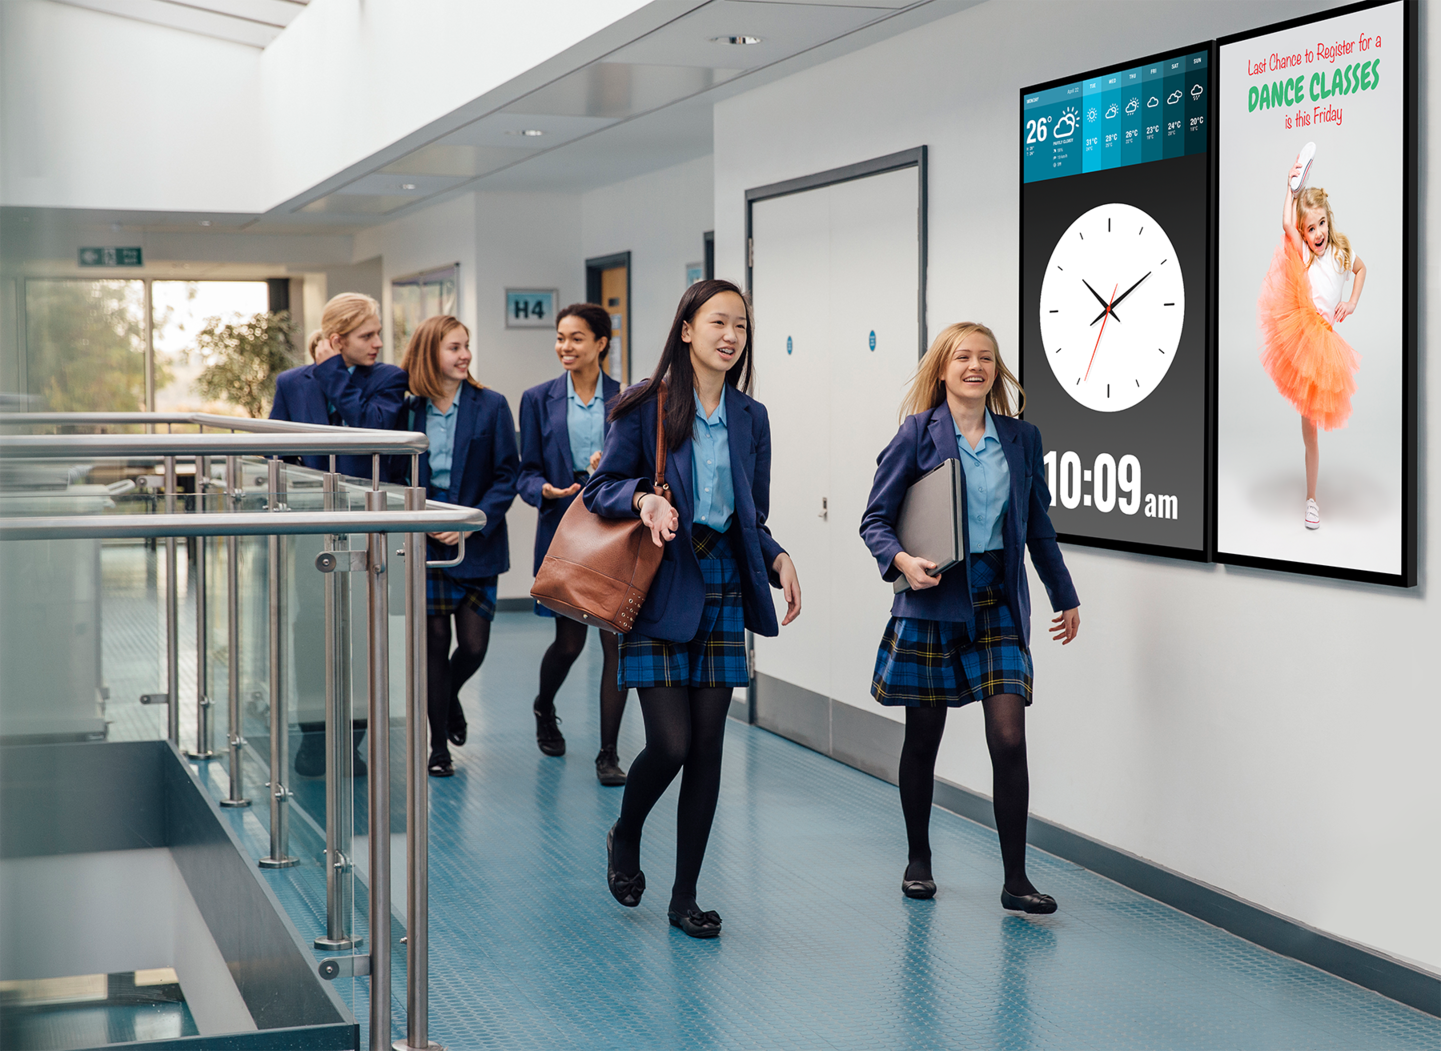 Improve communication between students with digital signage